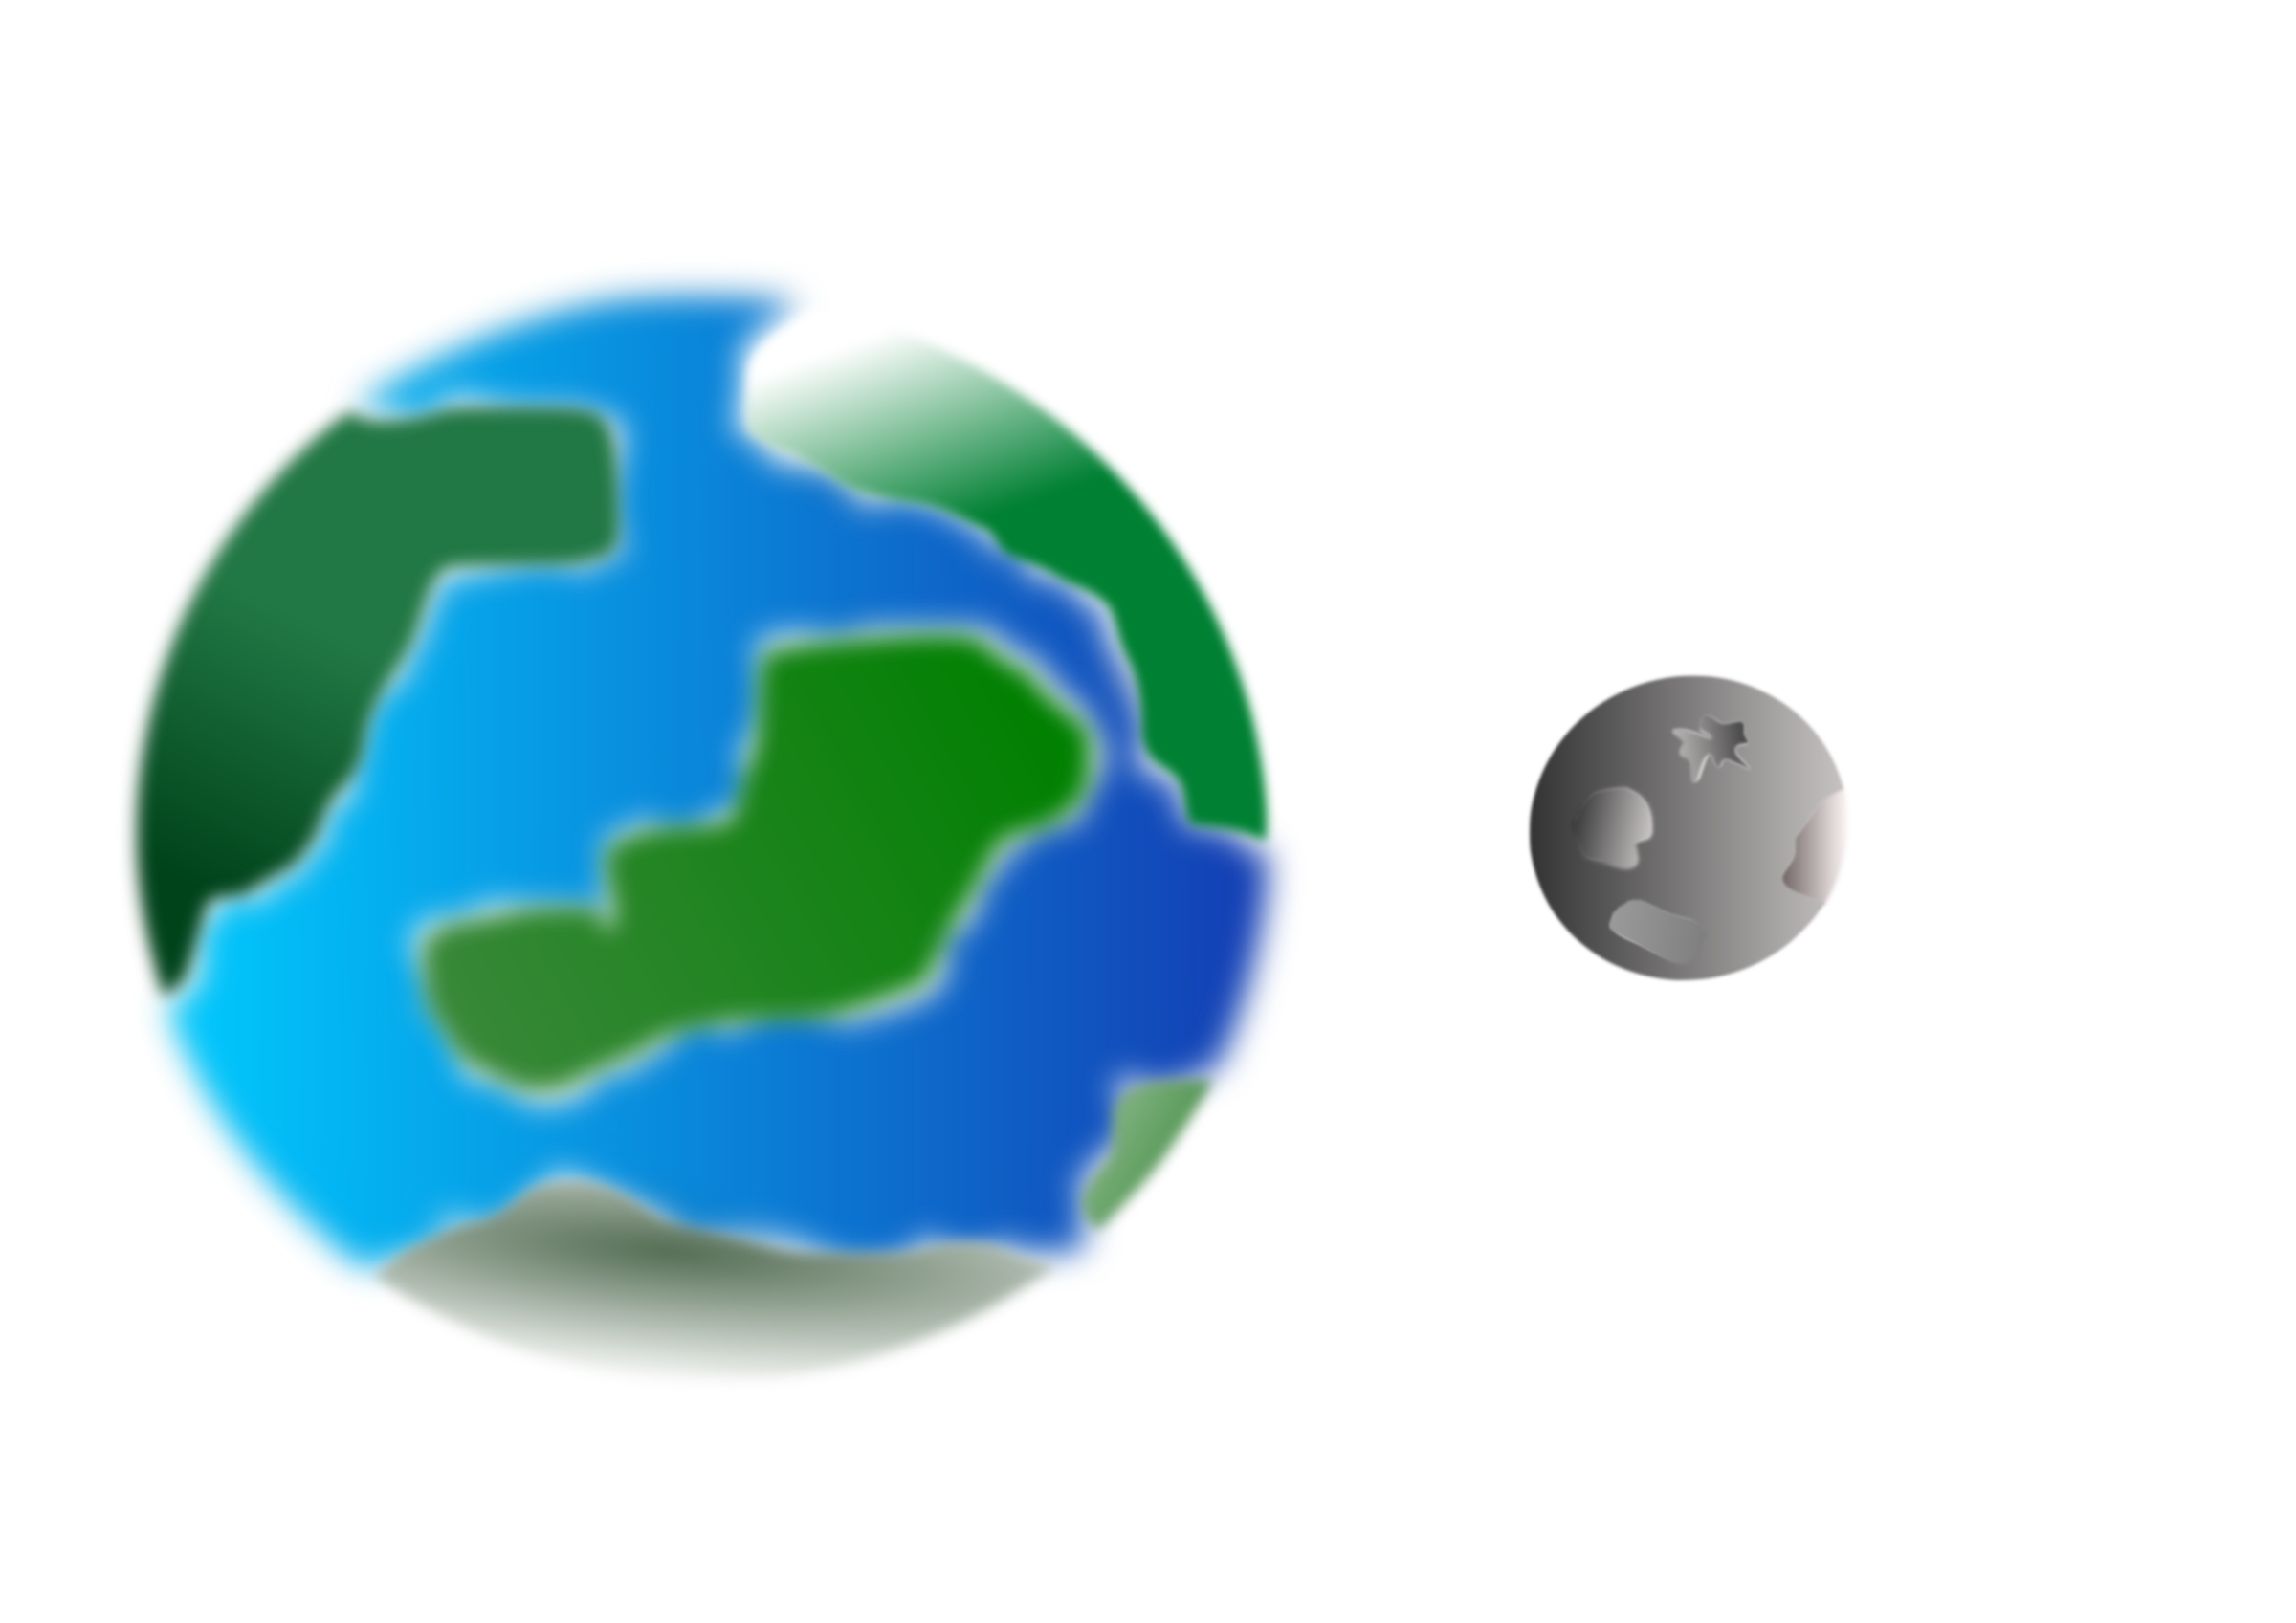 Planet with moon by cprostire